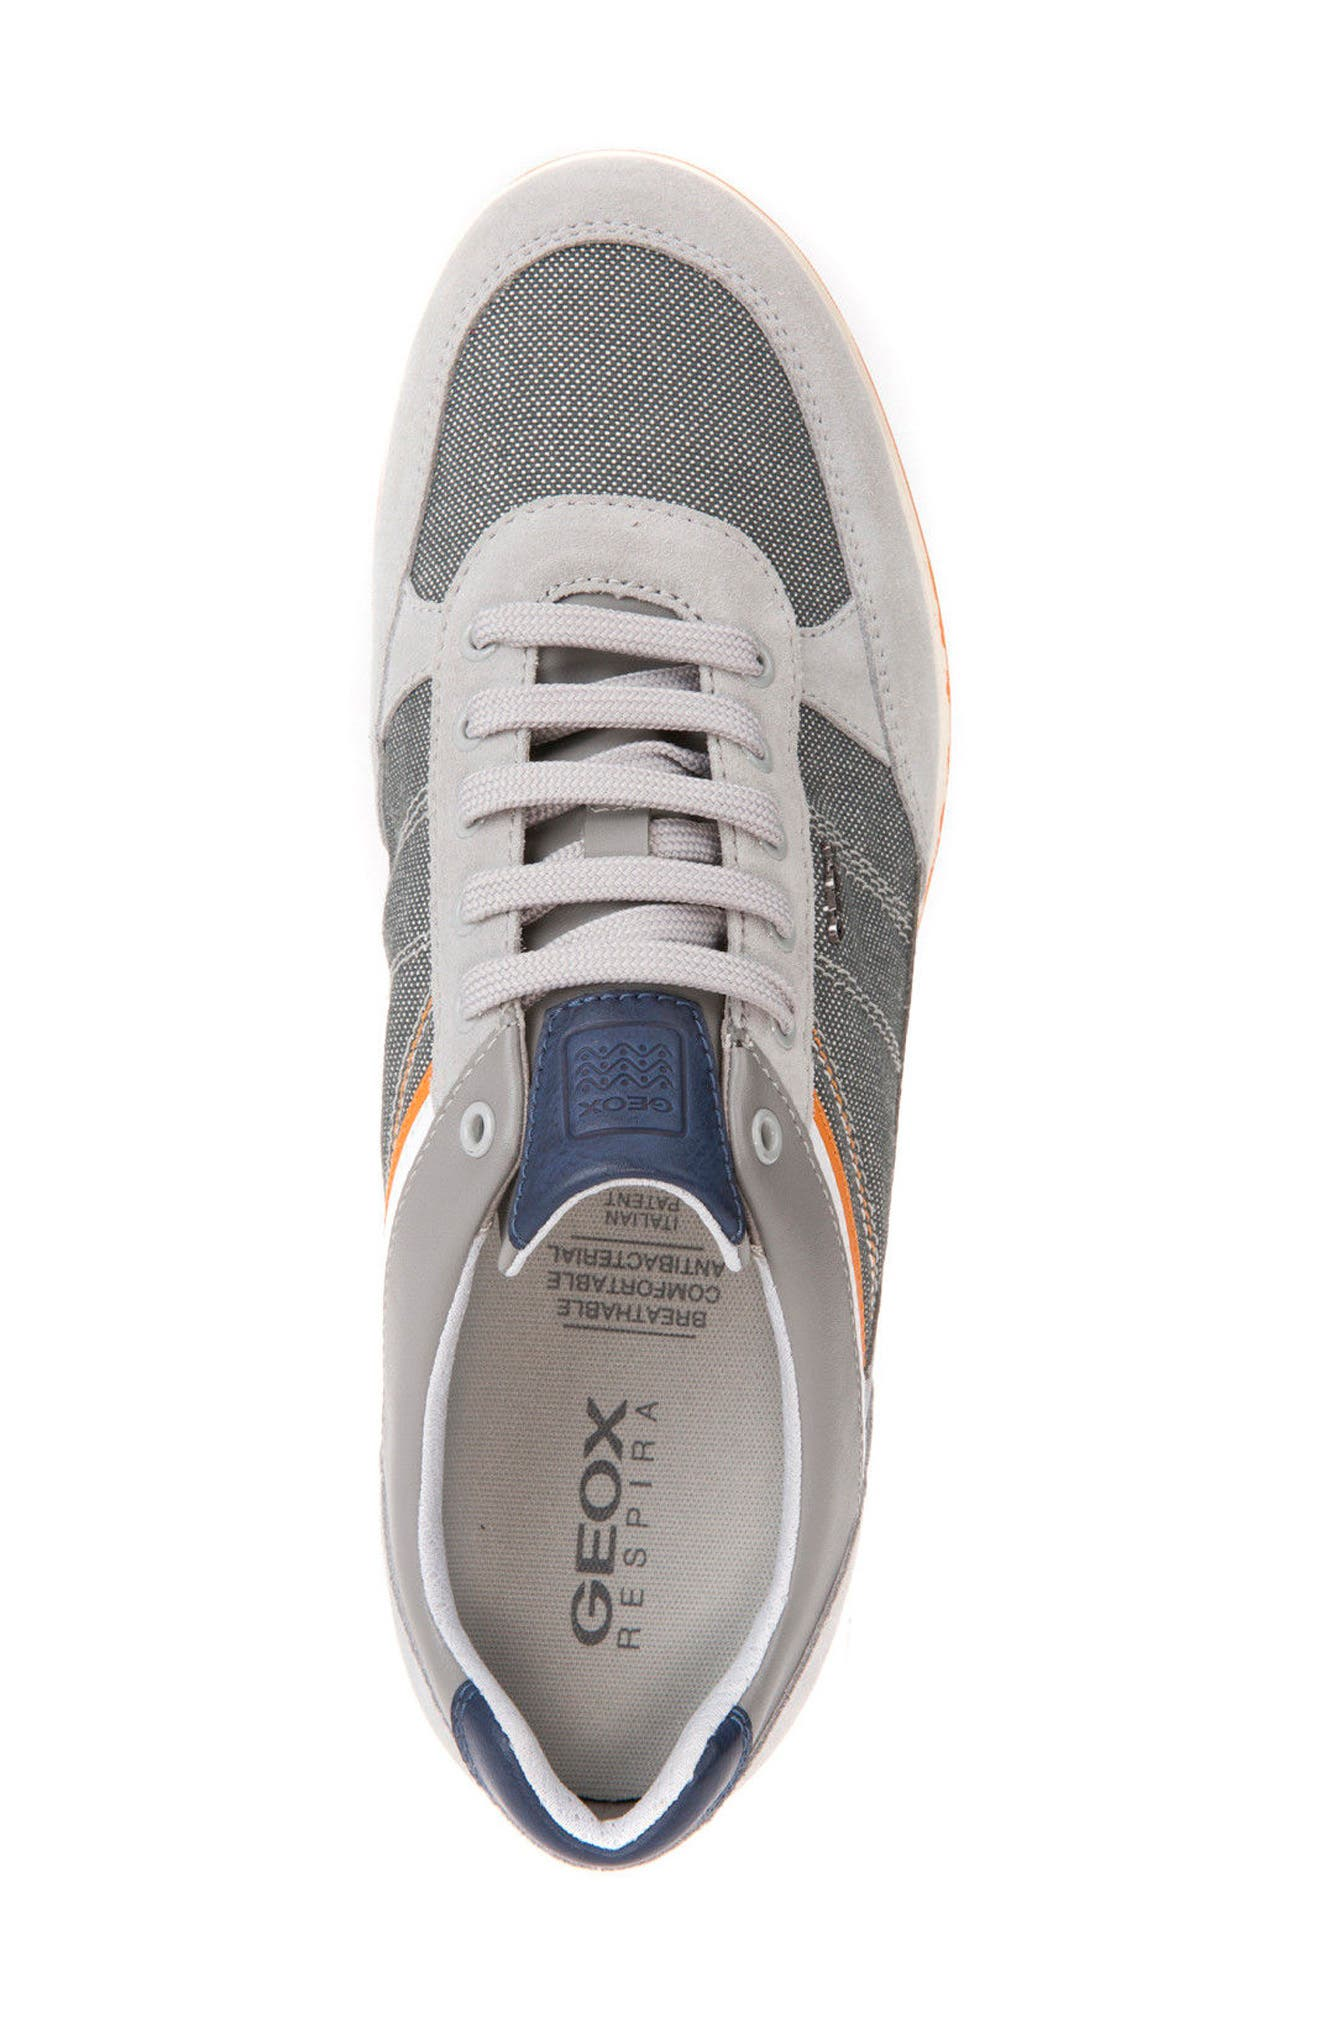 Renan 1 Low Top Sneaker,                             Alternate thumbnail 5, color,                             Light Grey/ Stone